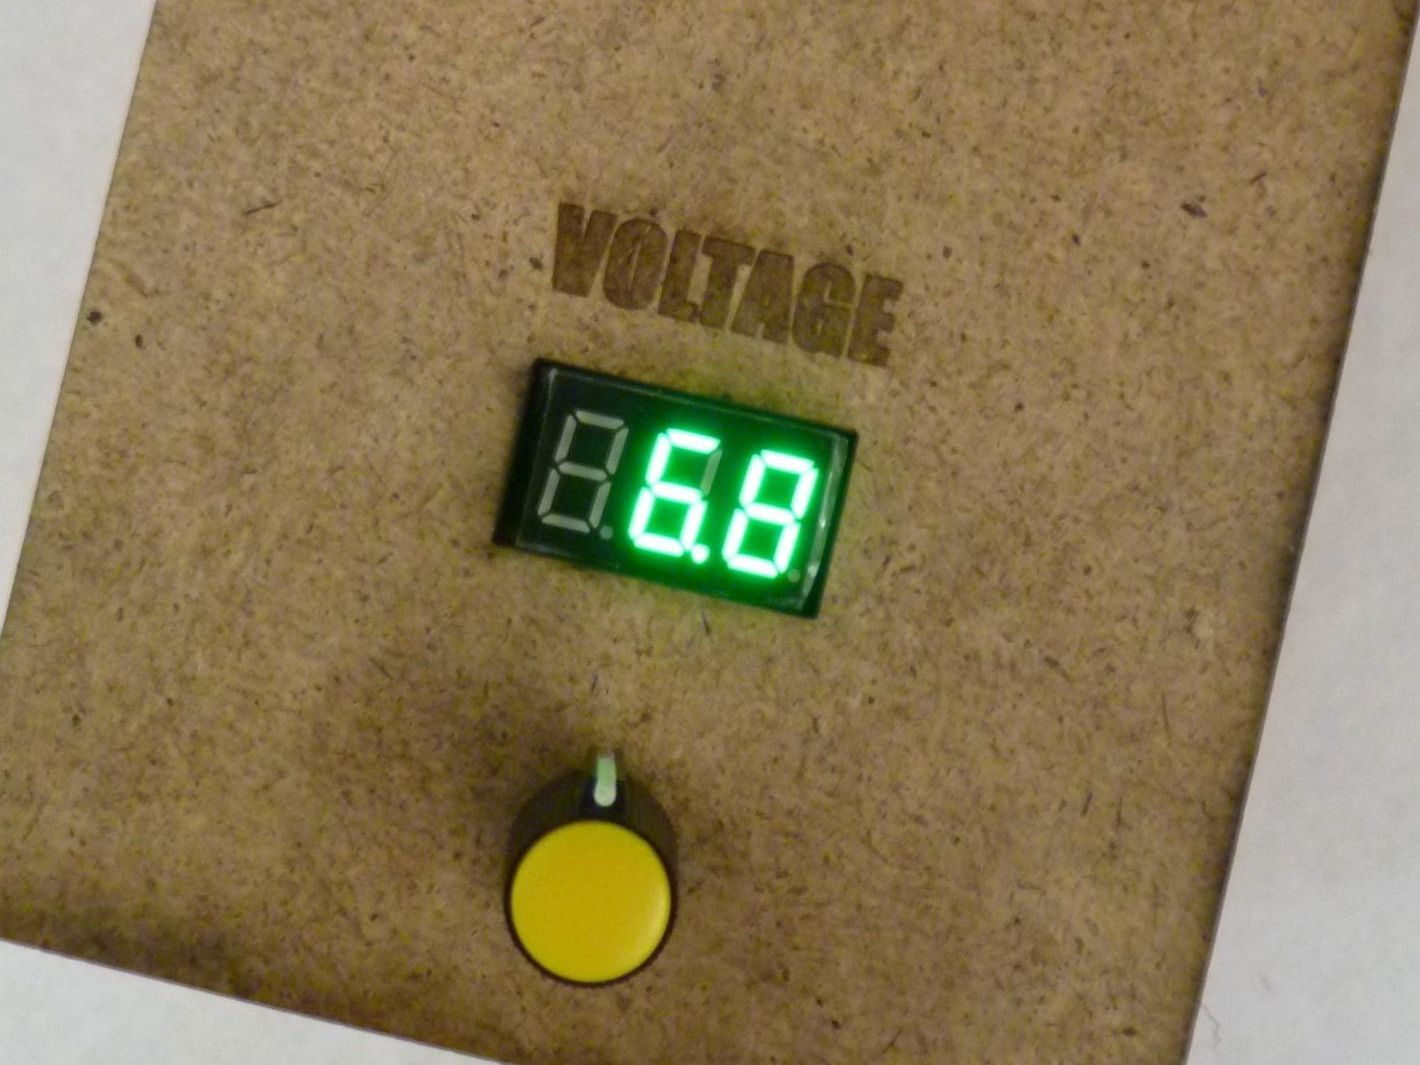 0 24 Volt 2 Amp Bench Top Power Supply Make Laboratory Variable Voltage From 0v To 50v And